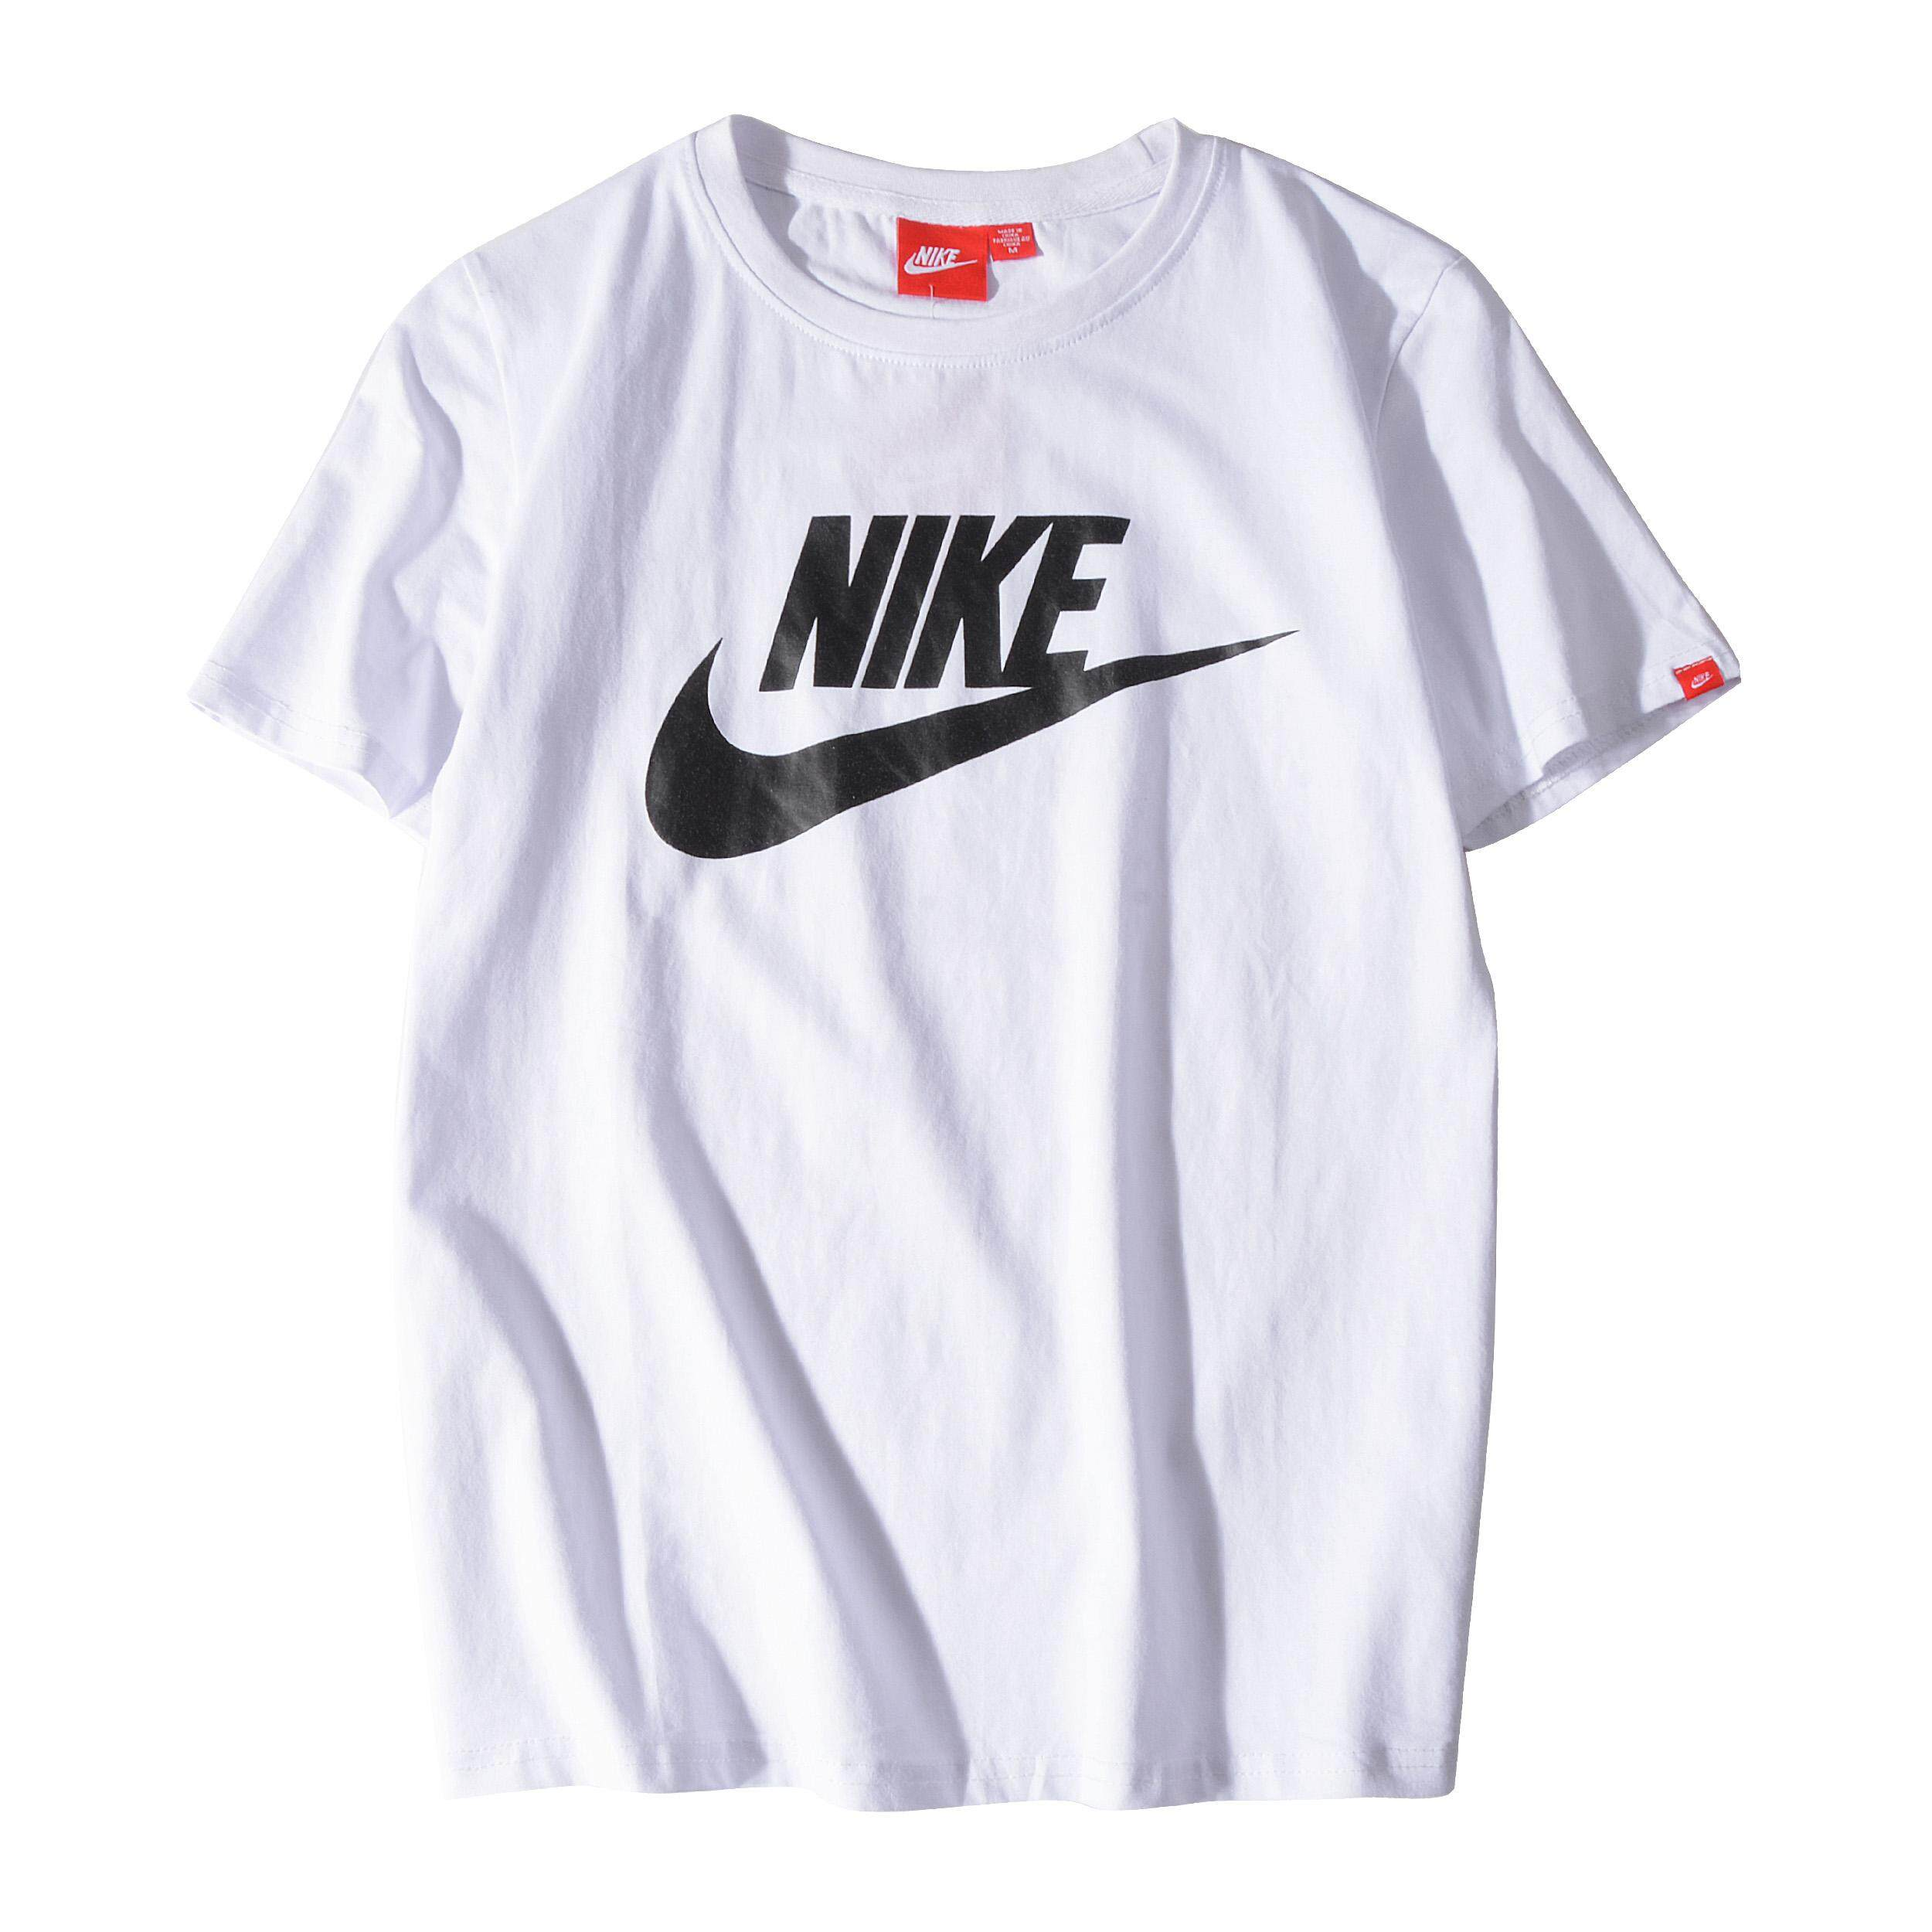 b1f6bba8 Original NIKE_t-shirt Classic Printed Comfortable Recreational Sports  Couple Short-sleeved T-shirt